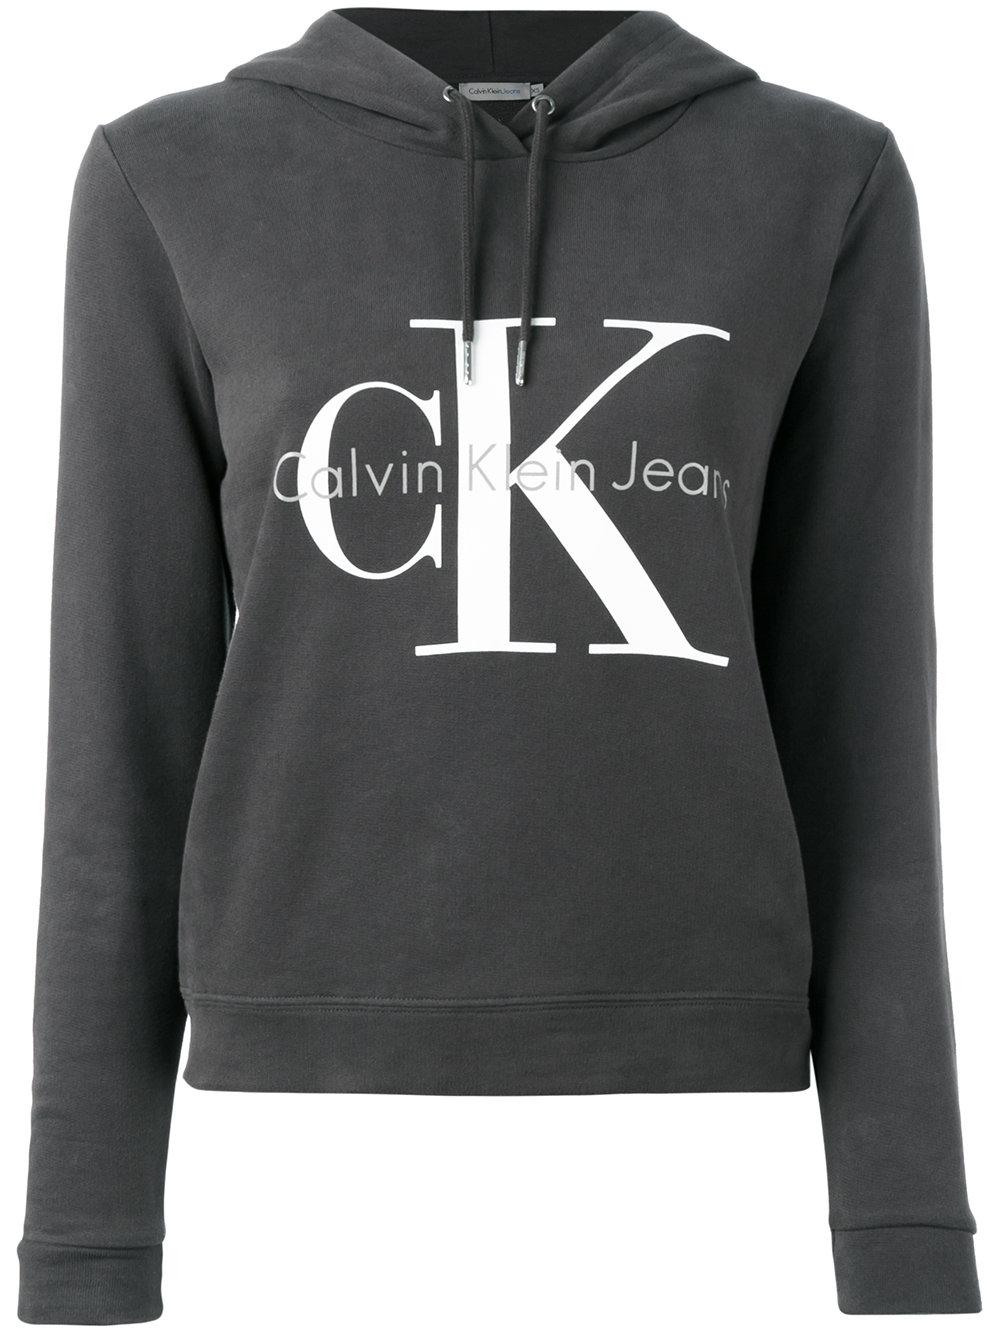 calvin klein jeans logo hooded sweatshirt in gray lyst. Black Bedroom Furniture Sets. Home Design Ideas